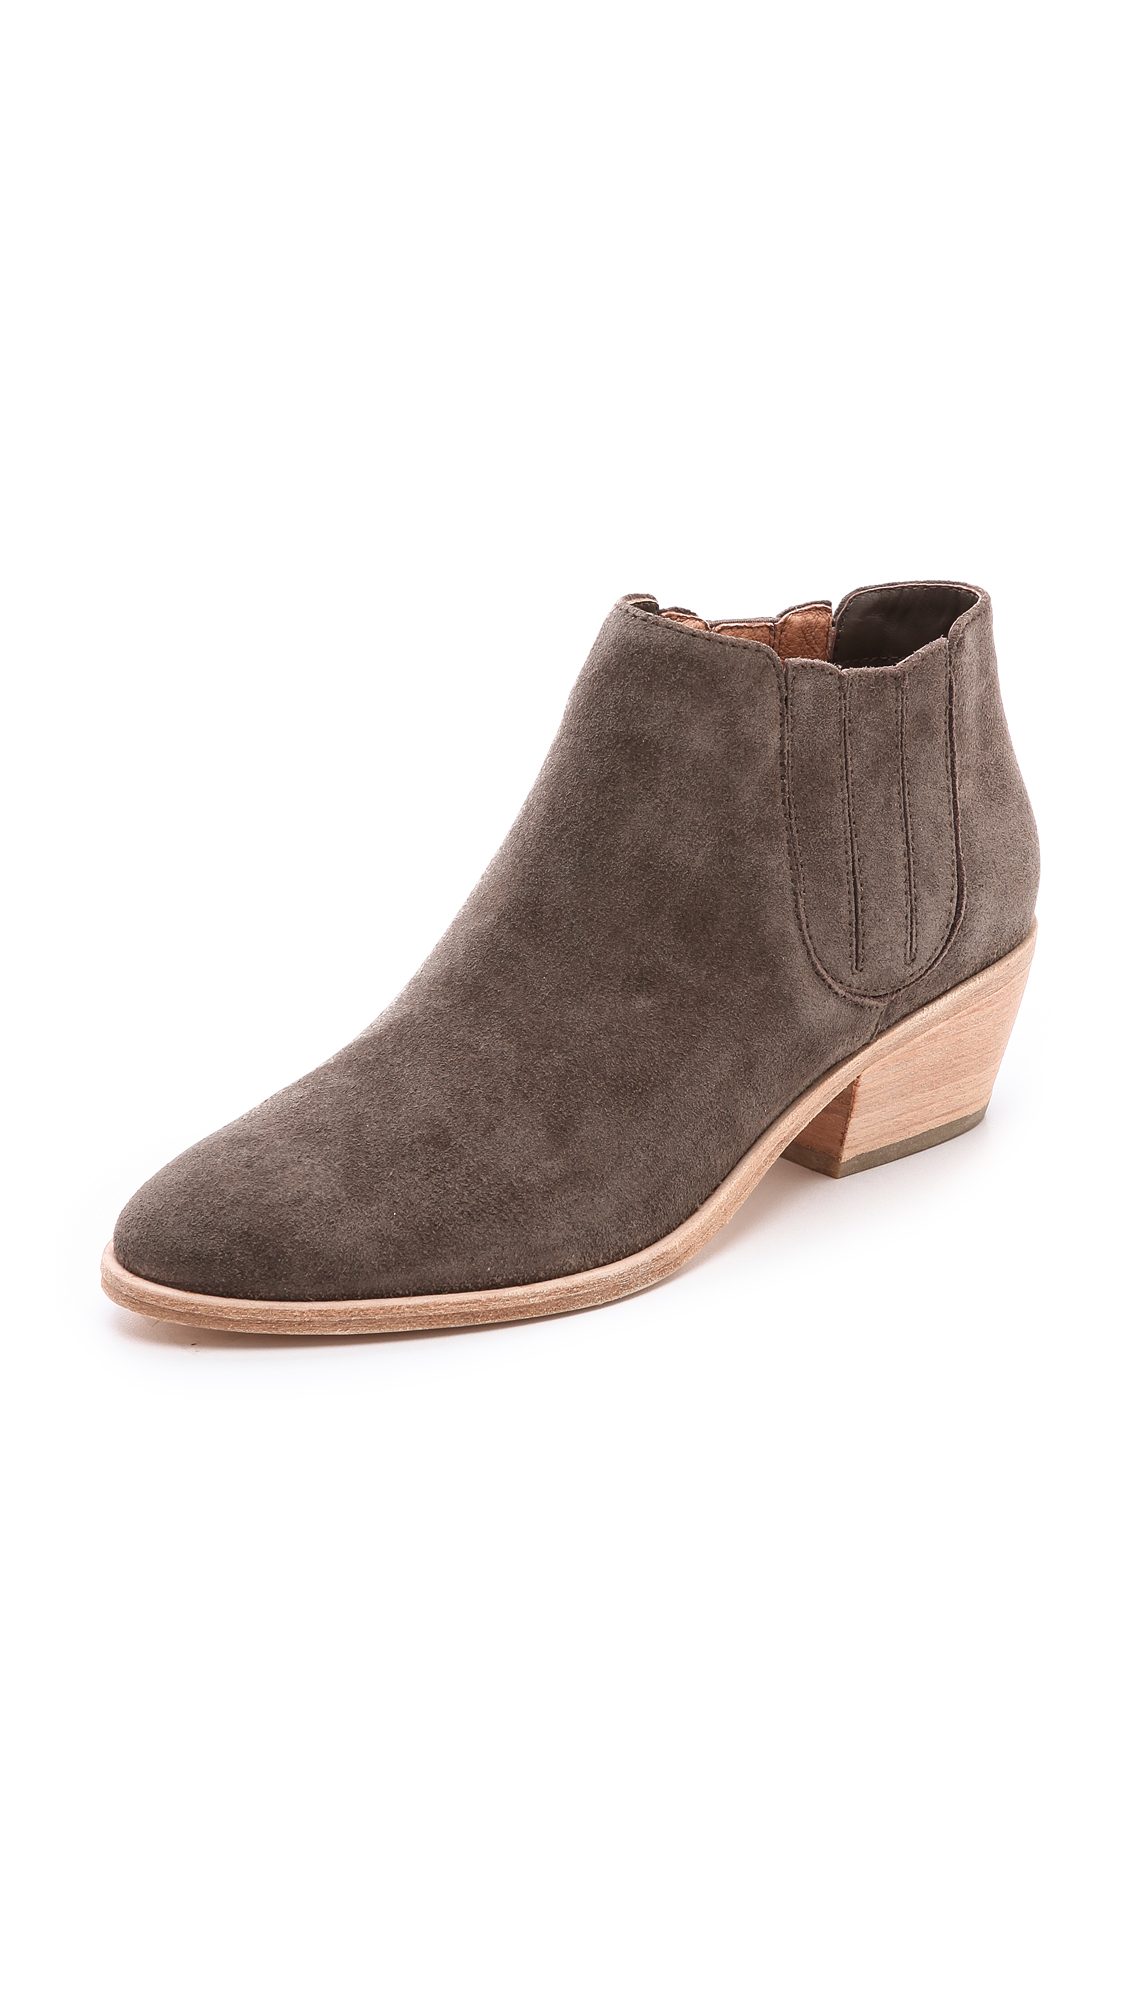 f6cf7e68cbe76 Joie Barlow Ankle Booties